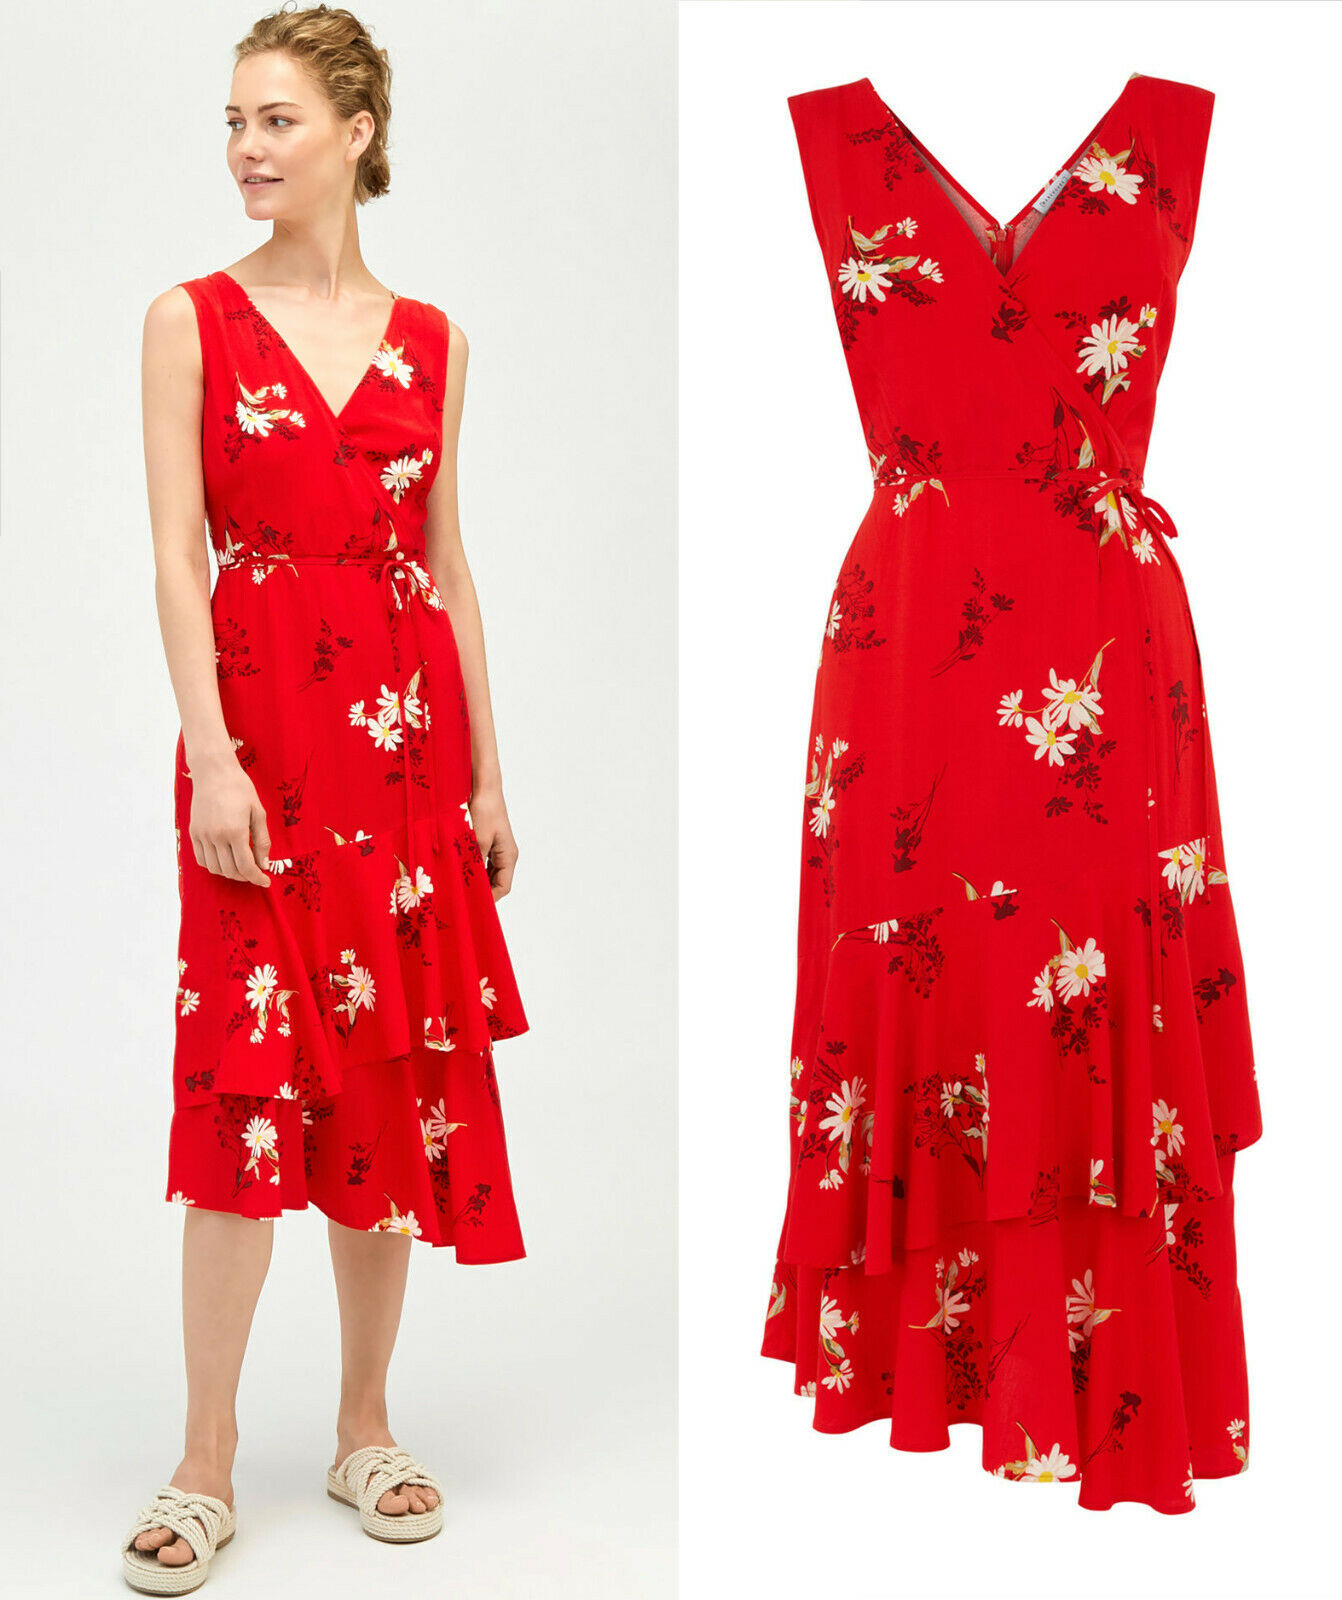 408fbeec20de6 Details about Warehouse New Yellow & White Daisy Floral Midi Wrap Summer  Dress in Red 6 to 16